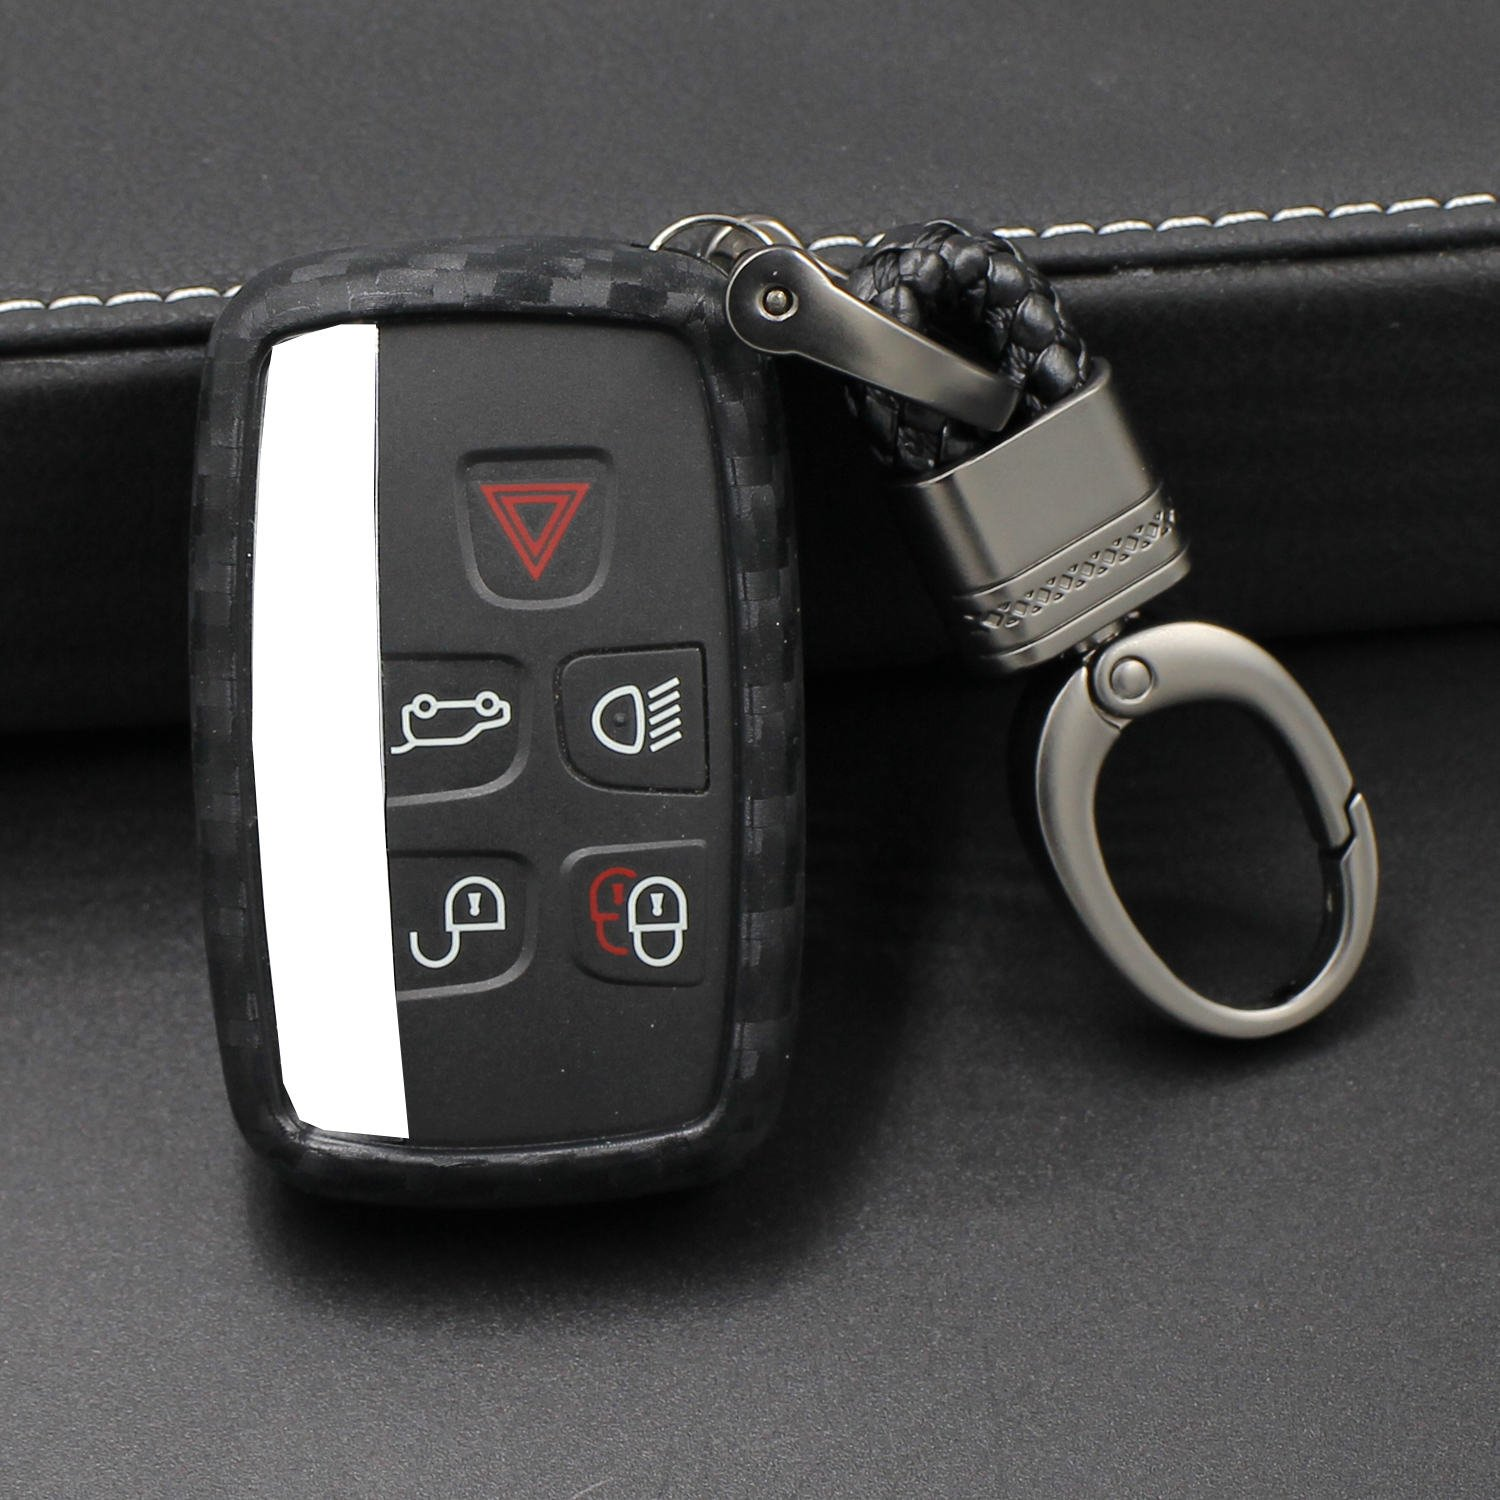 Round Keychain Car Keyless Entry Fob Case For Land Rover Discovery Sport Discovery 4 Freelander 2 Range Rover Evoque M.JVisun Soft Silicone Rubber Carbon Fiber Texture Cover Protector For Land Rover